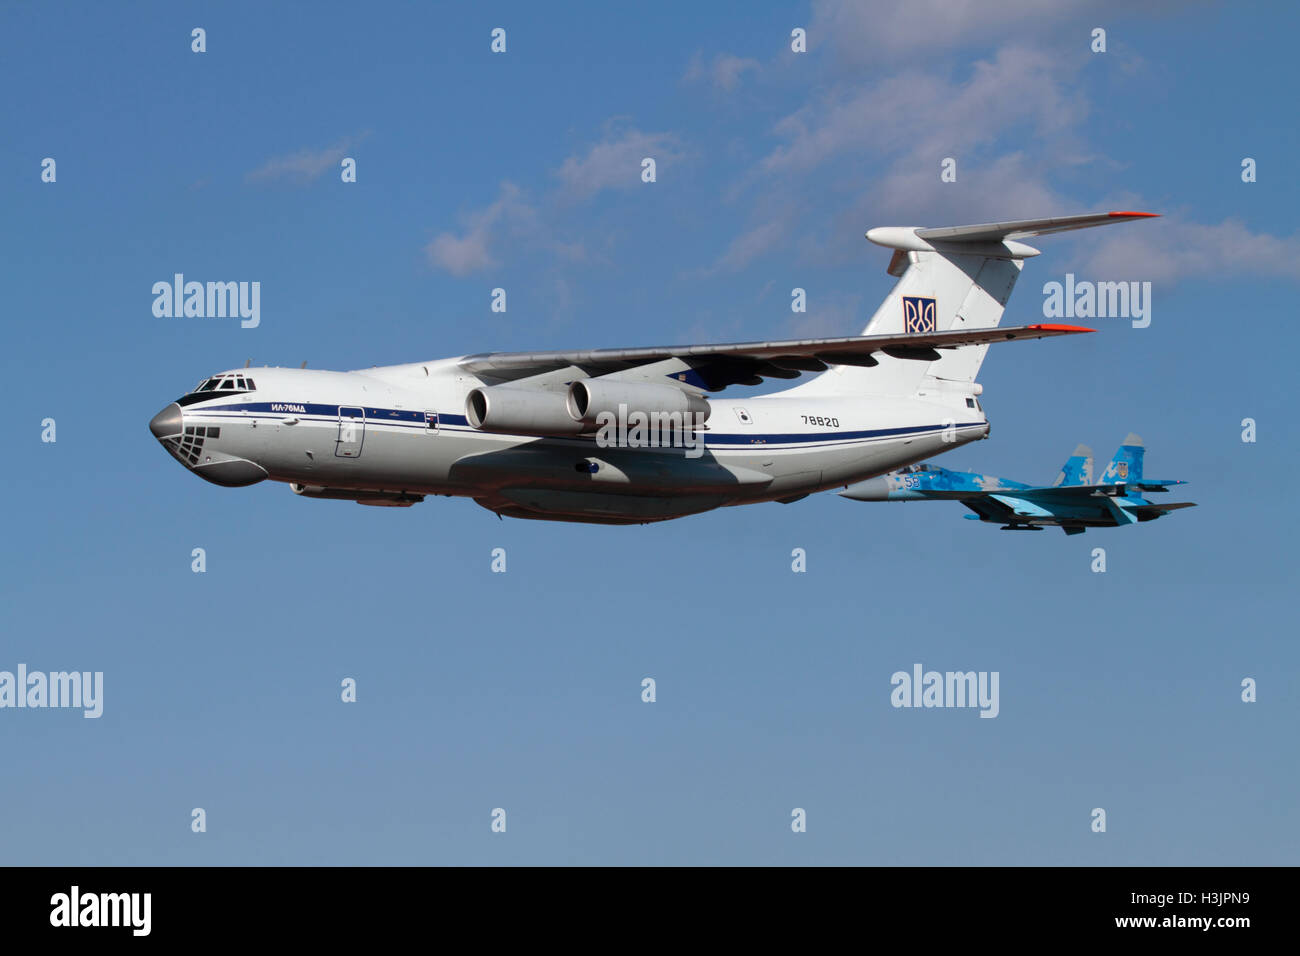 Ukraine Air Force Ilyushin Il-76 transport flying in formation with a Sukhoi Su-27 Flanker fighter jet - Stock Image